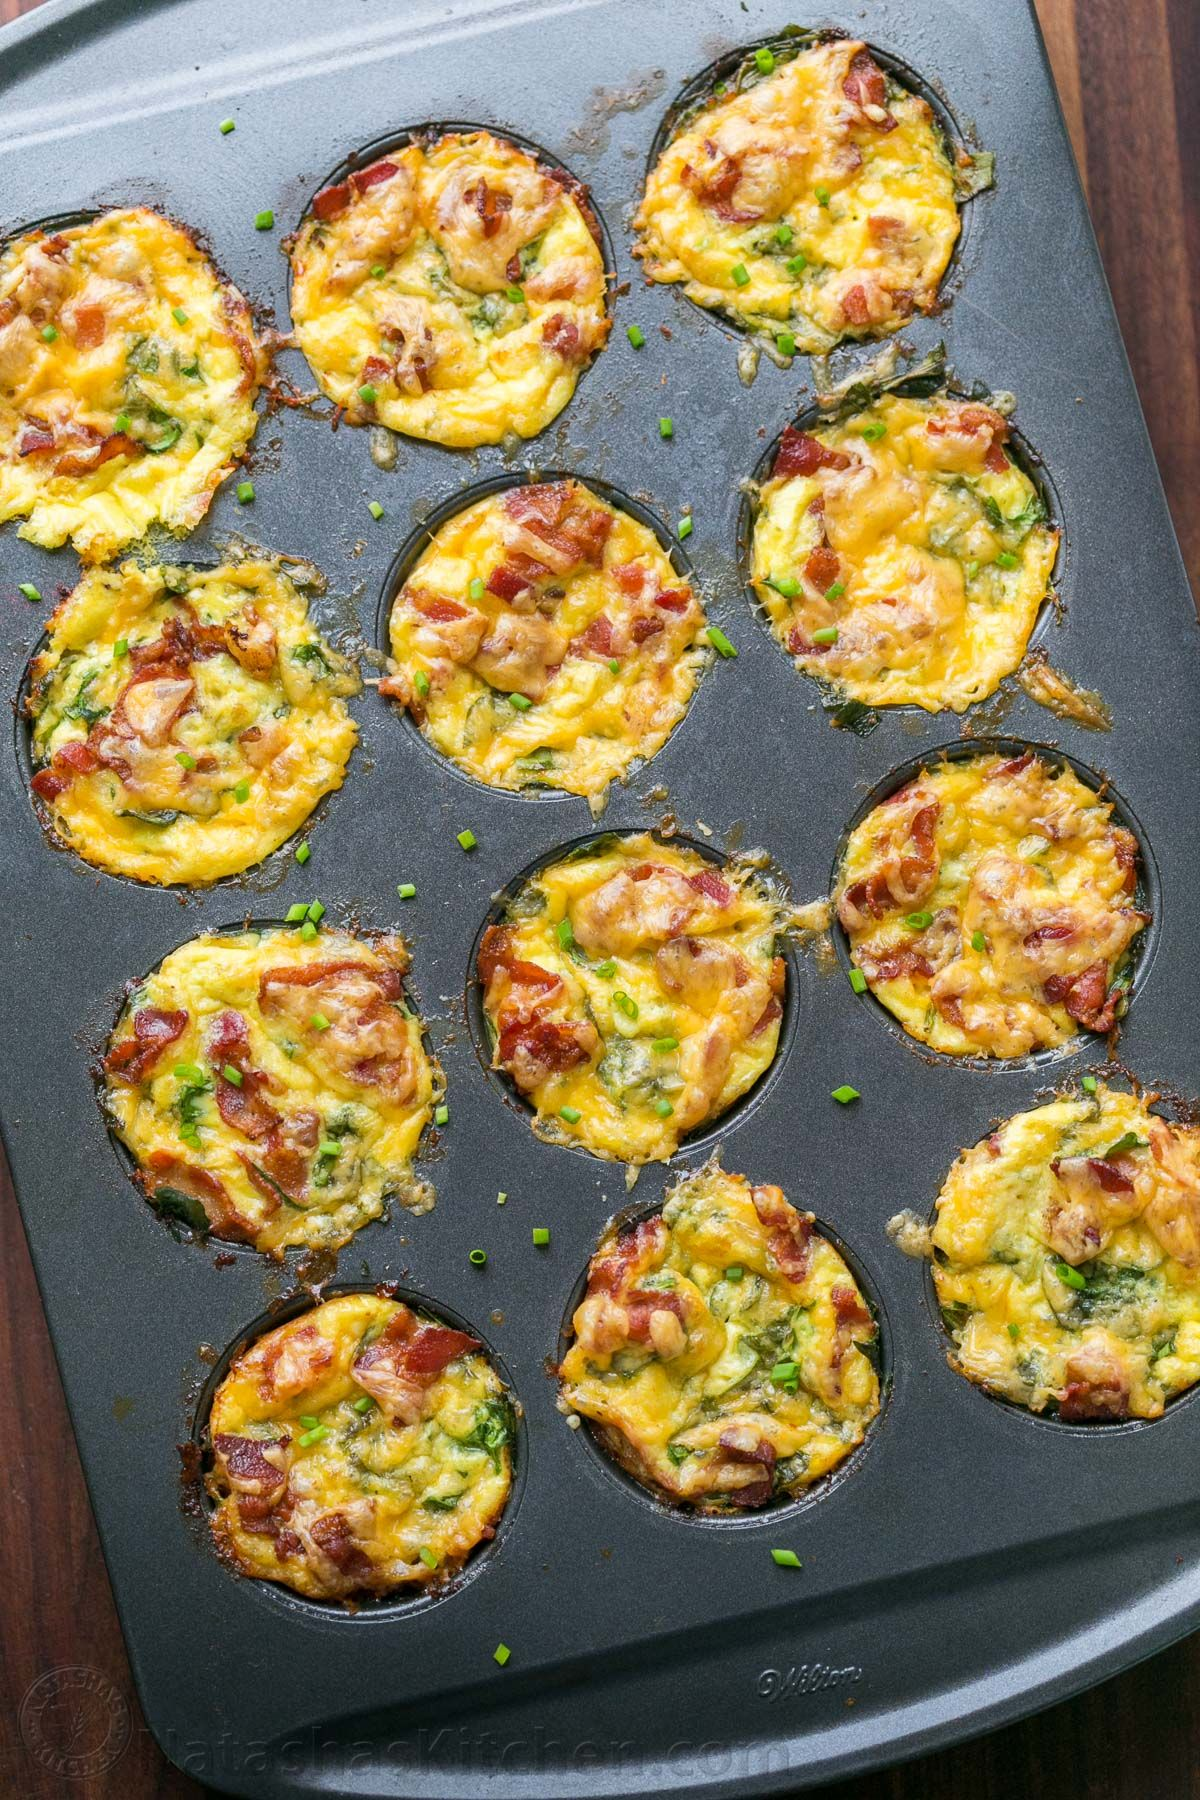 Breakfast egg muffins come together quickly. Loaded with potato, spinach, eggs, cheese and crisp ba